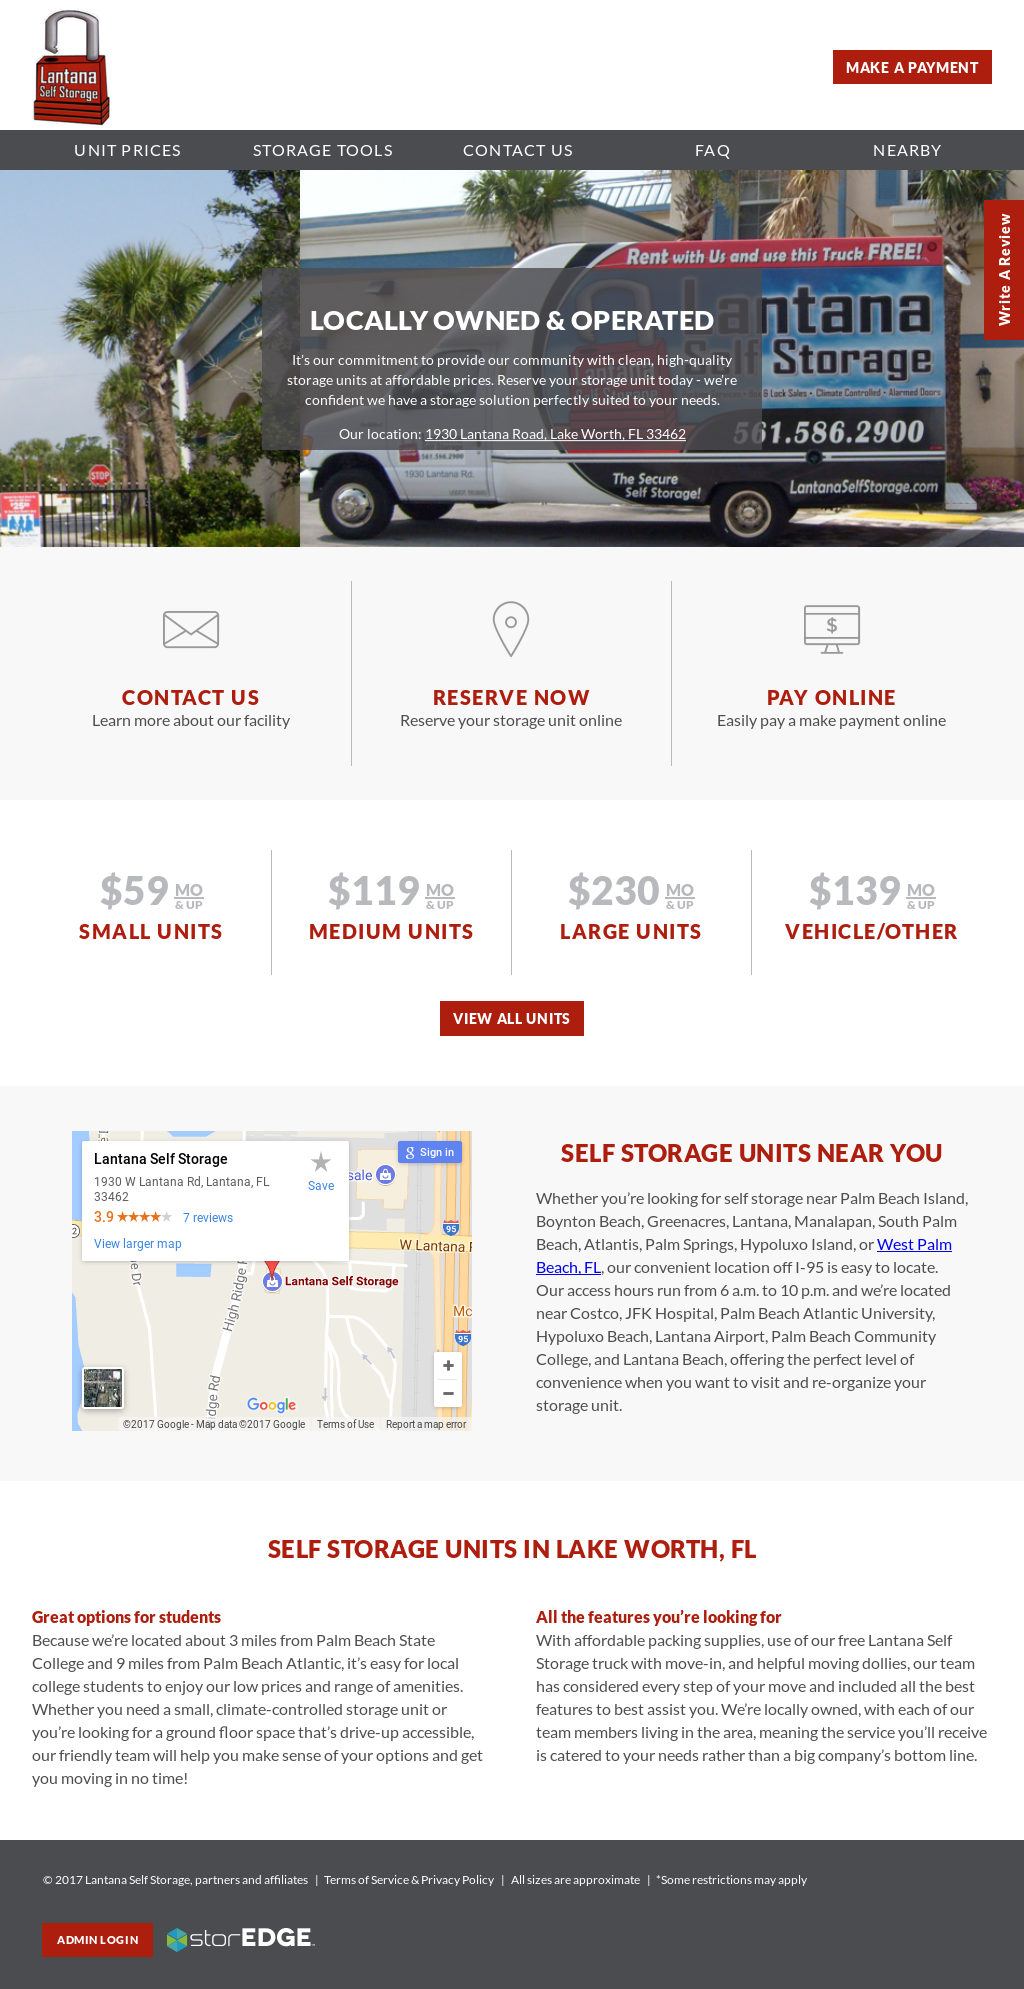 Lantana Self Storage Website History